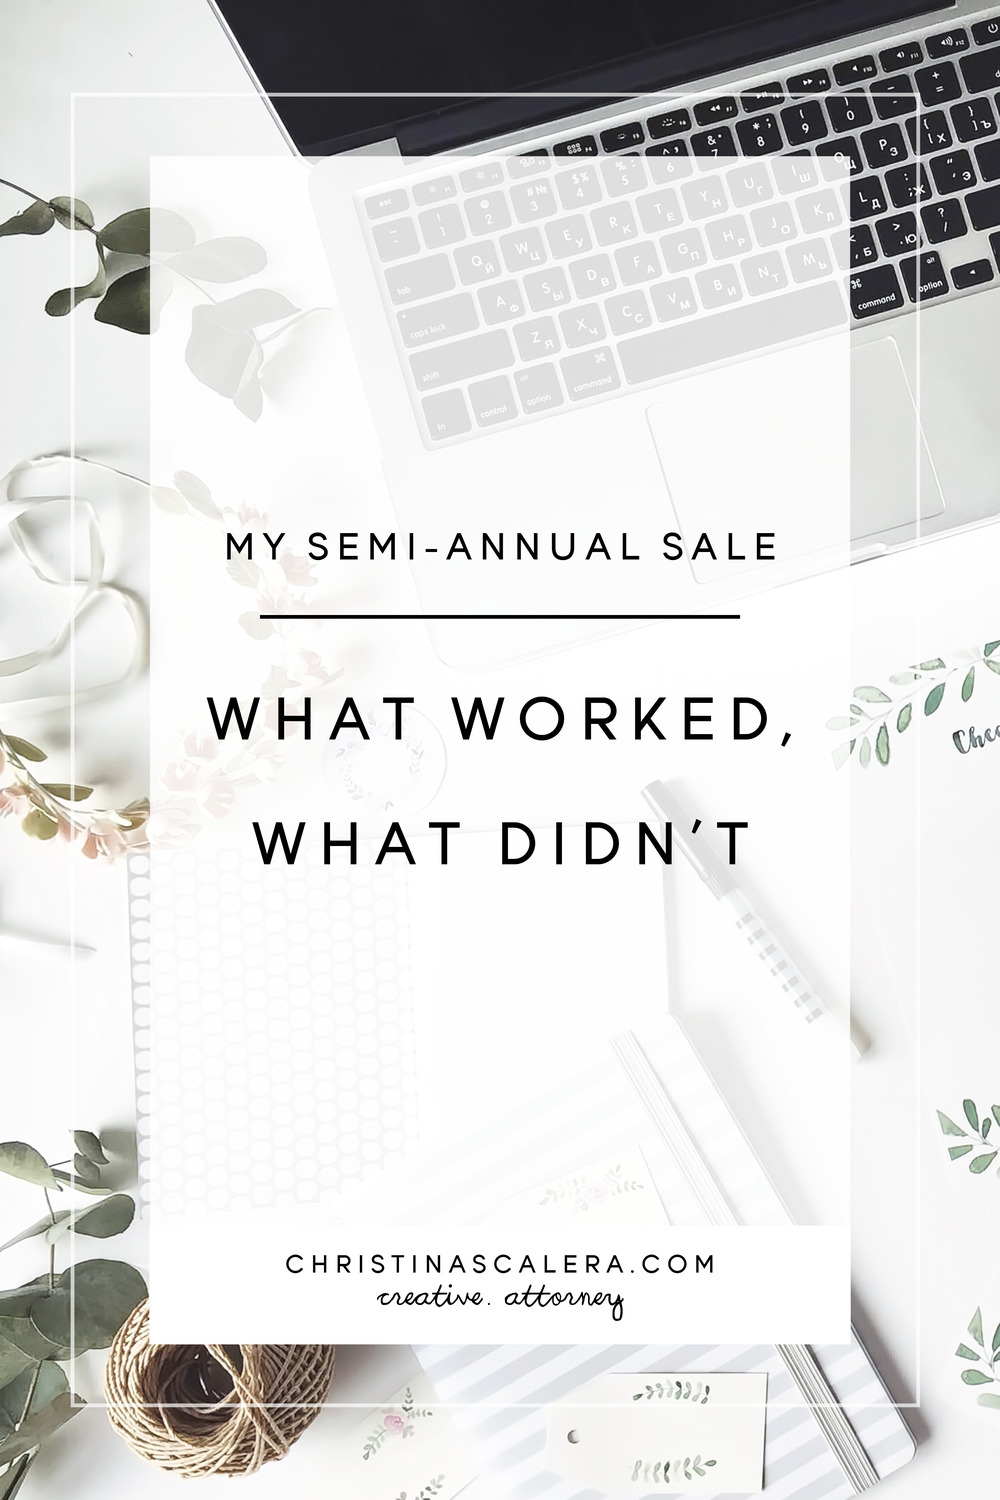 MY SEMI-ANNUAL SALE: WHAT WORKED, WHAT DIDN'T